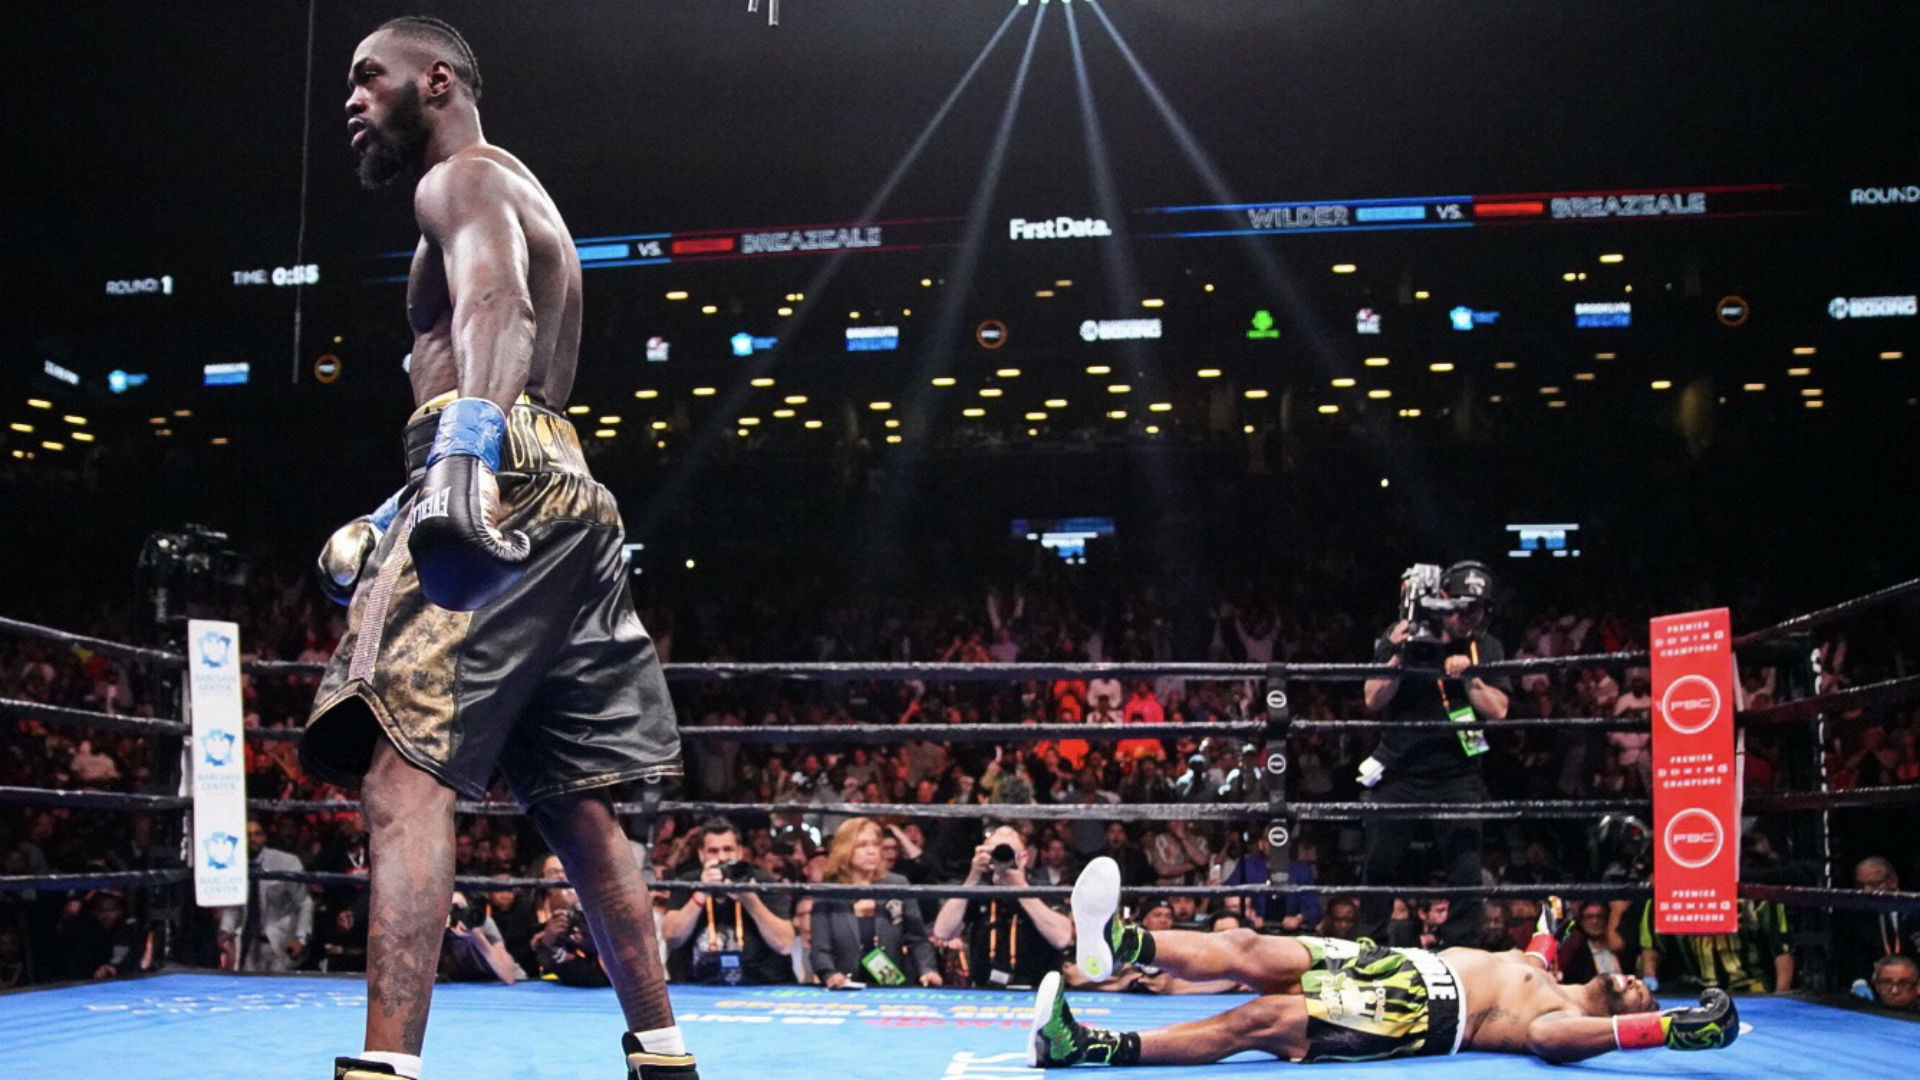 Deontay Wilder Vs Dominic Breazeale Results Wilder Retains Wbc